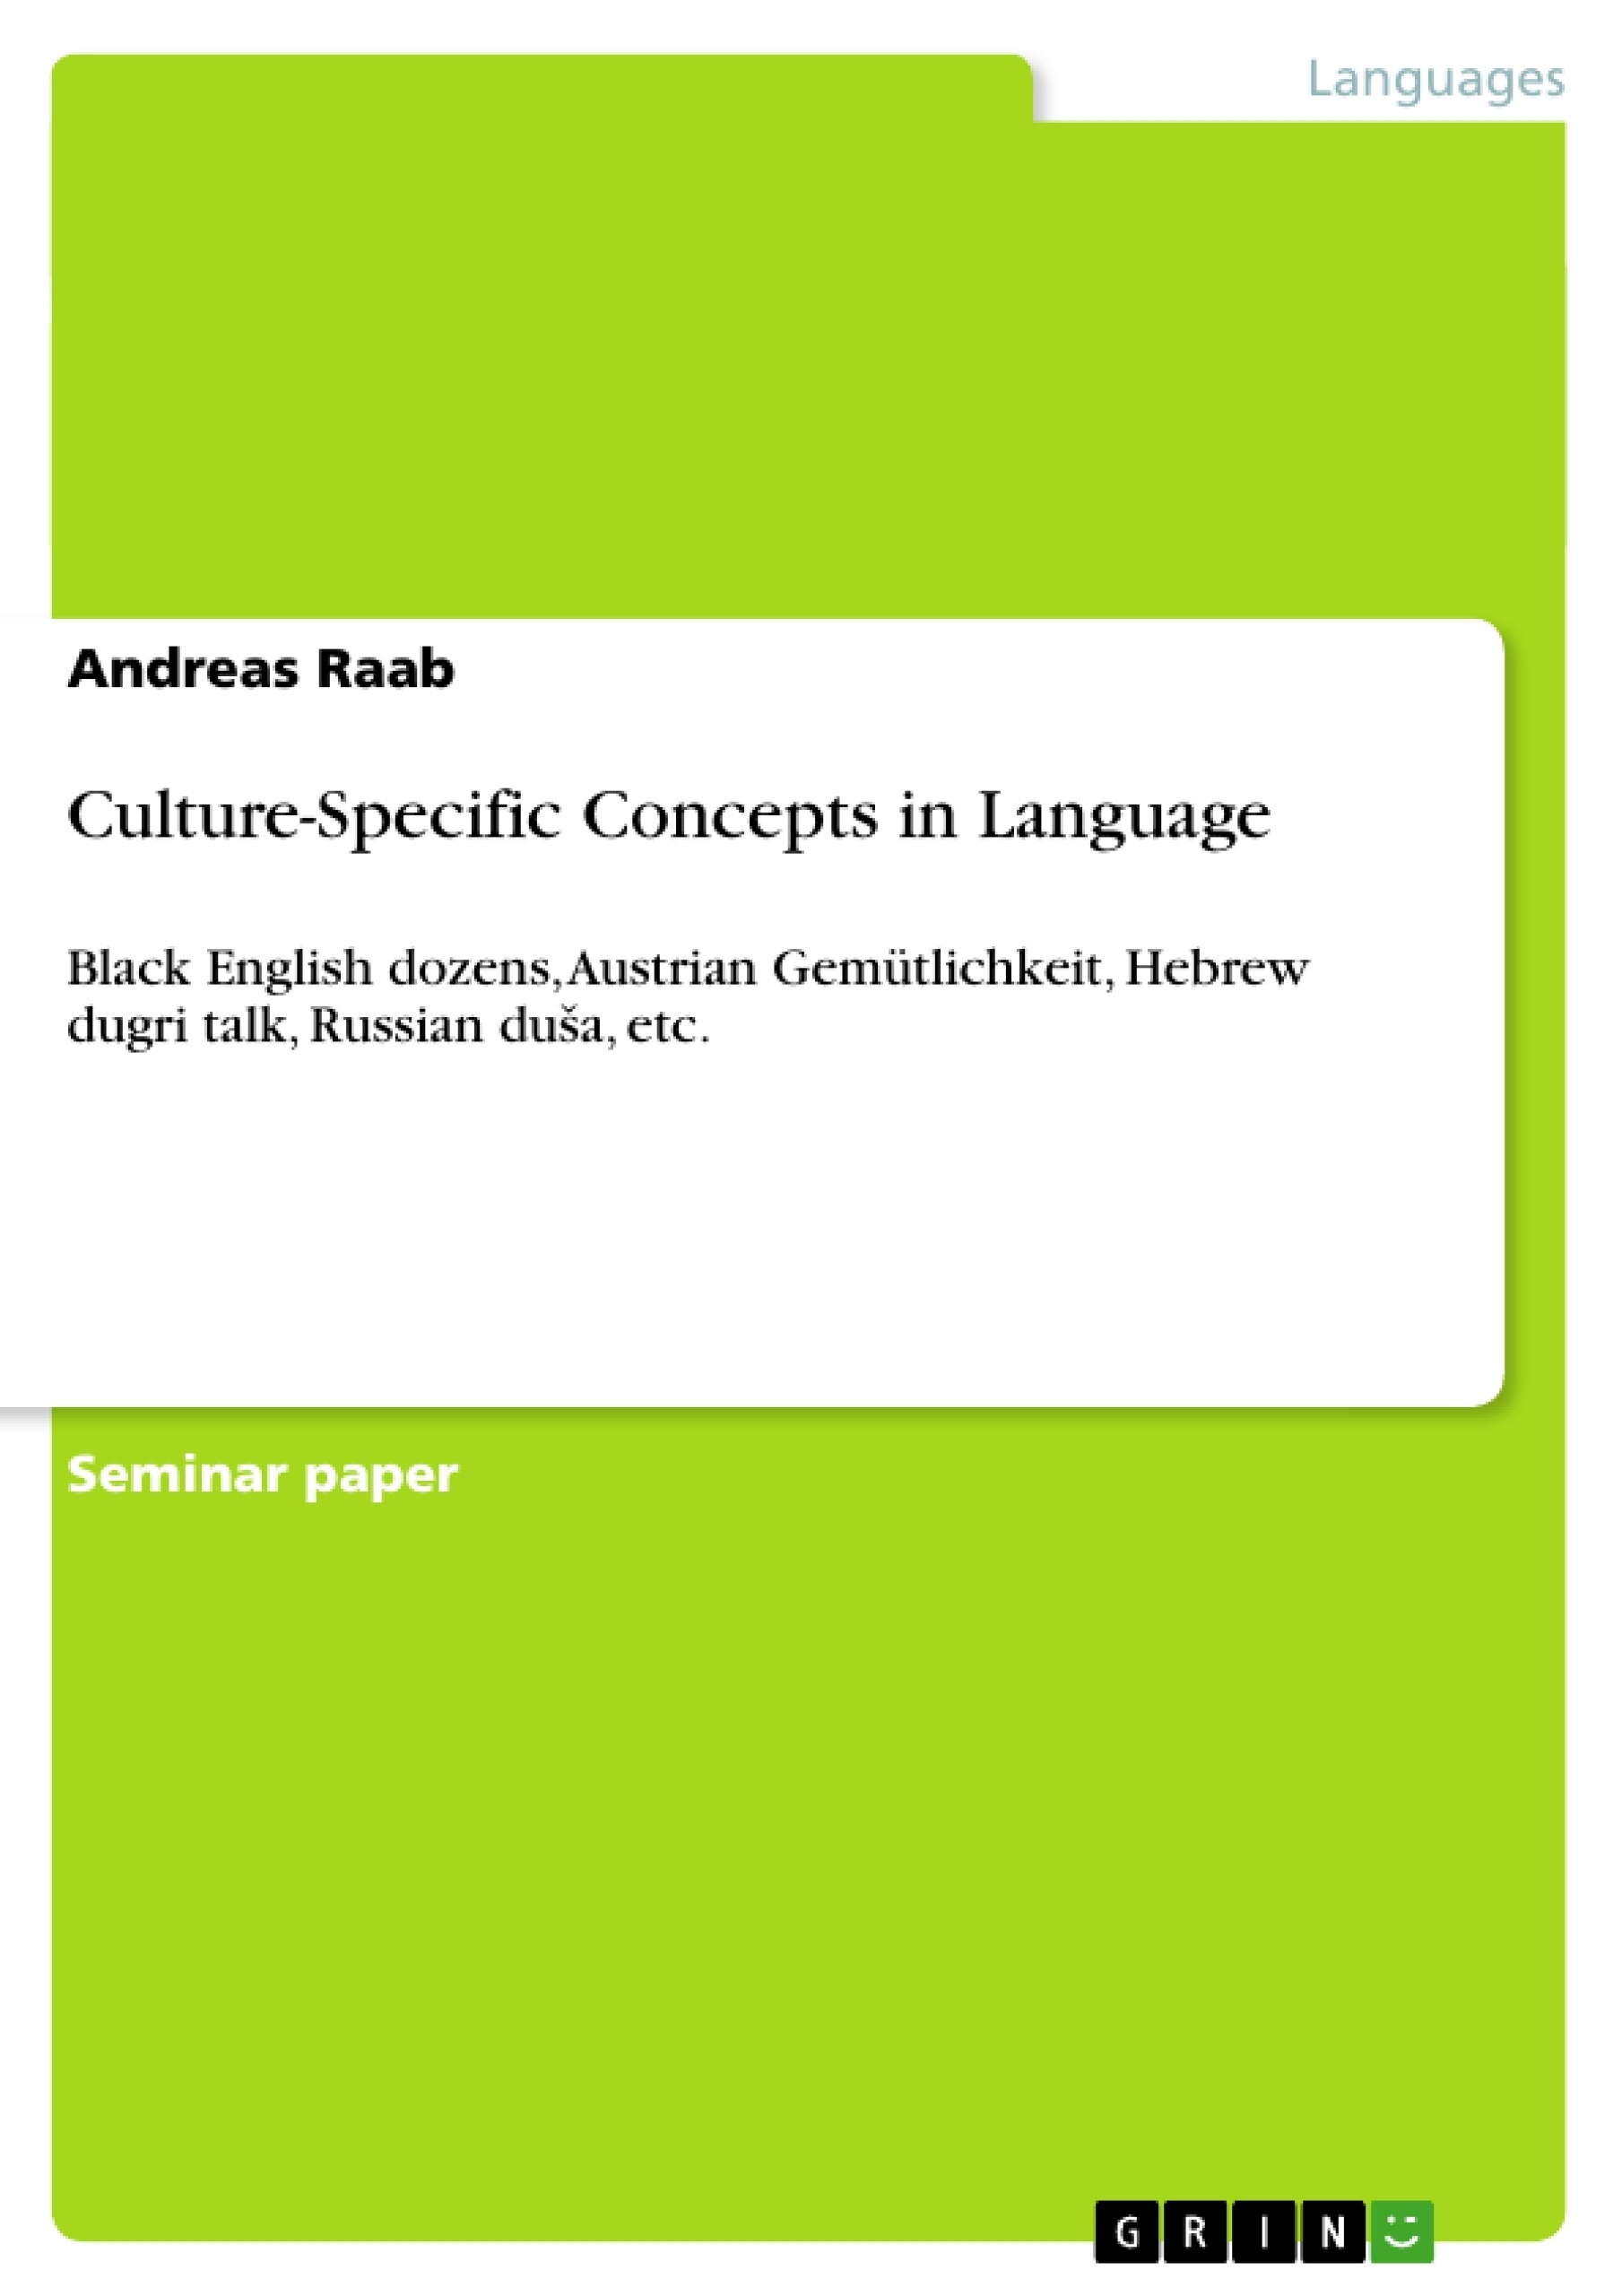 Title: Culture-Specific Concepts in Language